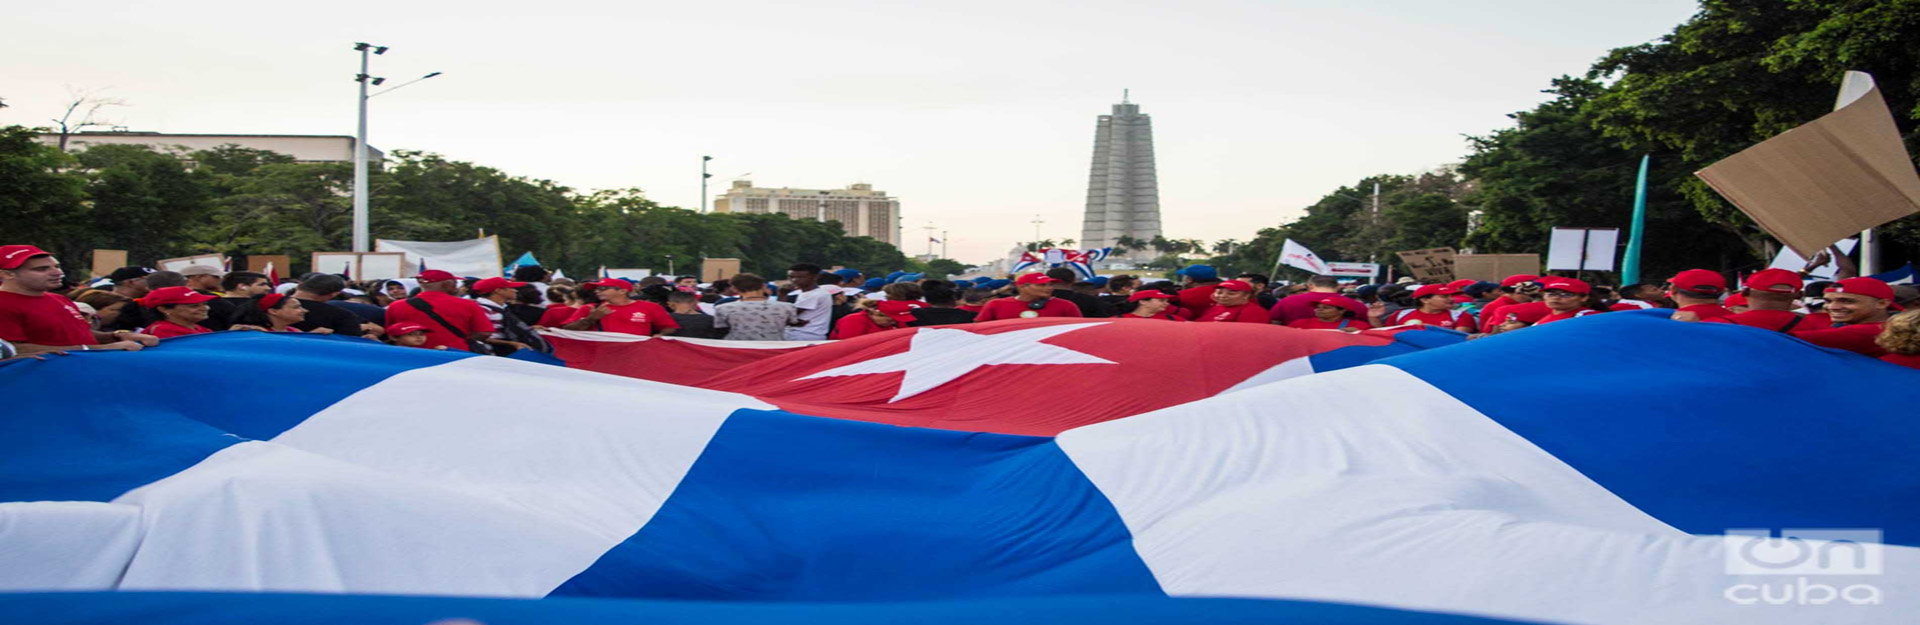 International workers day celebration, Cuba Travel